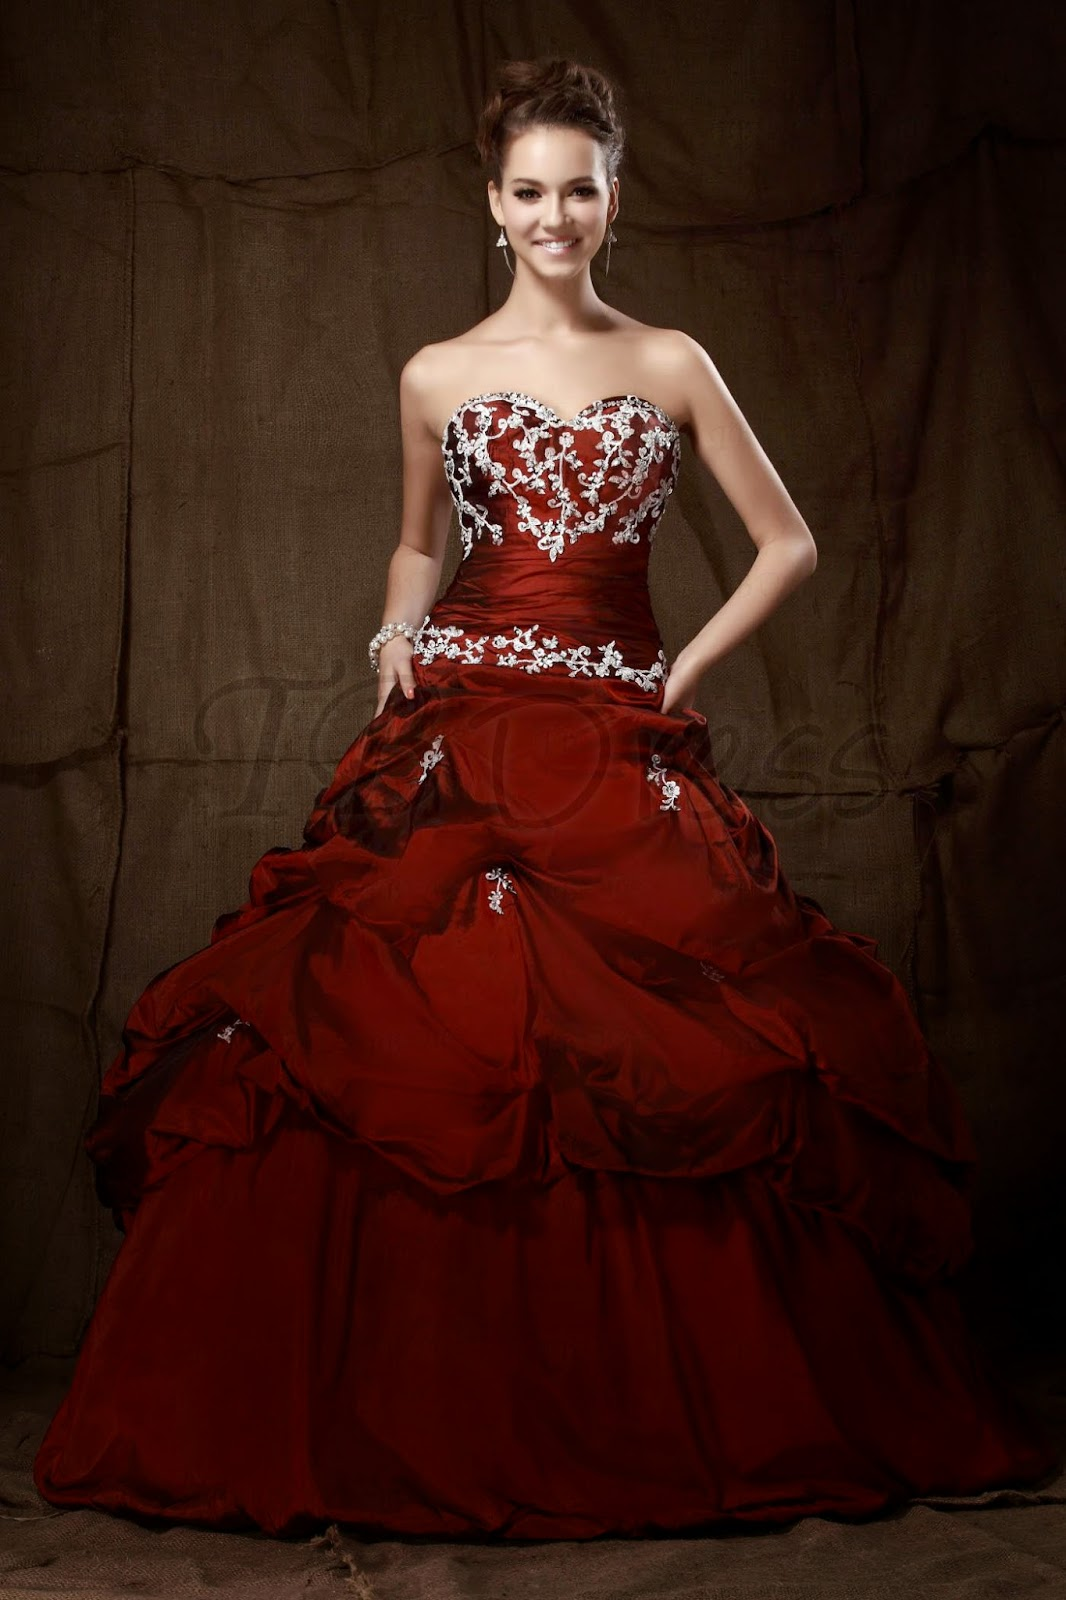 http://www.tbdress.com/product/Modern-Ball-Gown-Sweetheart-Floor-Length-Pick-Ups-Sandras-Quinceanera-Ball-Gown-Dress-9673892.html